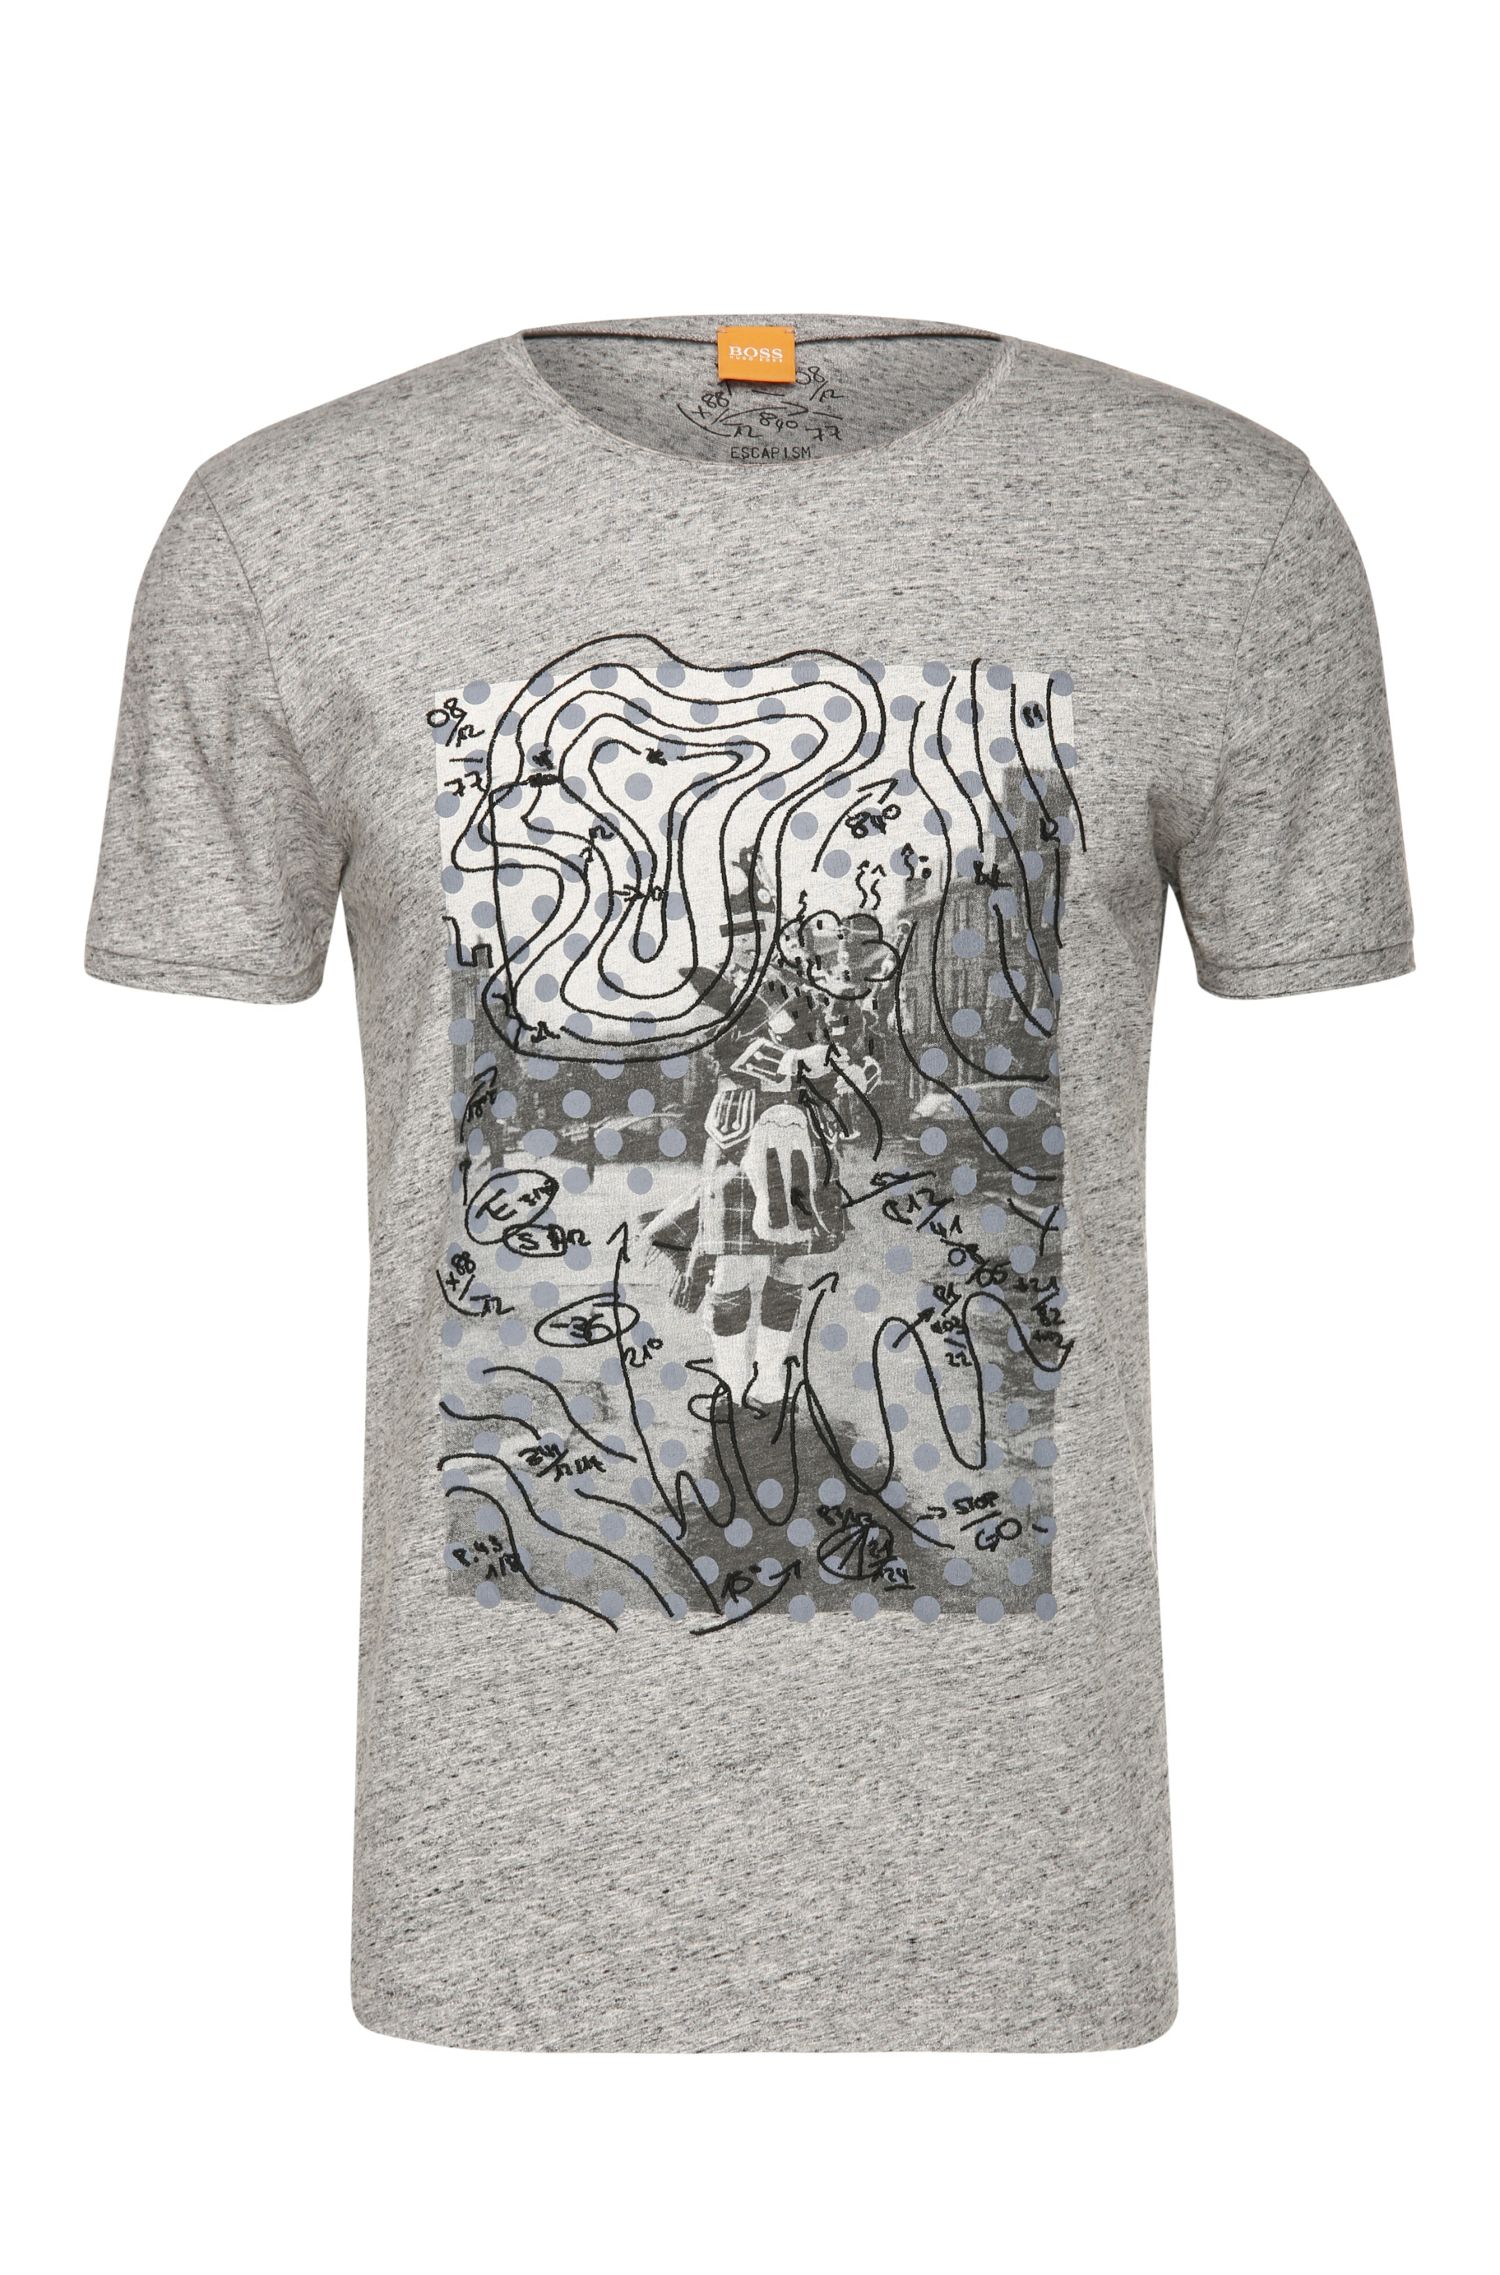 Slim-Fit T-Shirt mit Print und Stitchings: ´Tavoon 2`